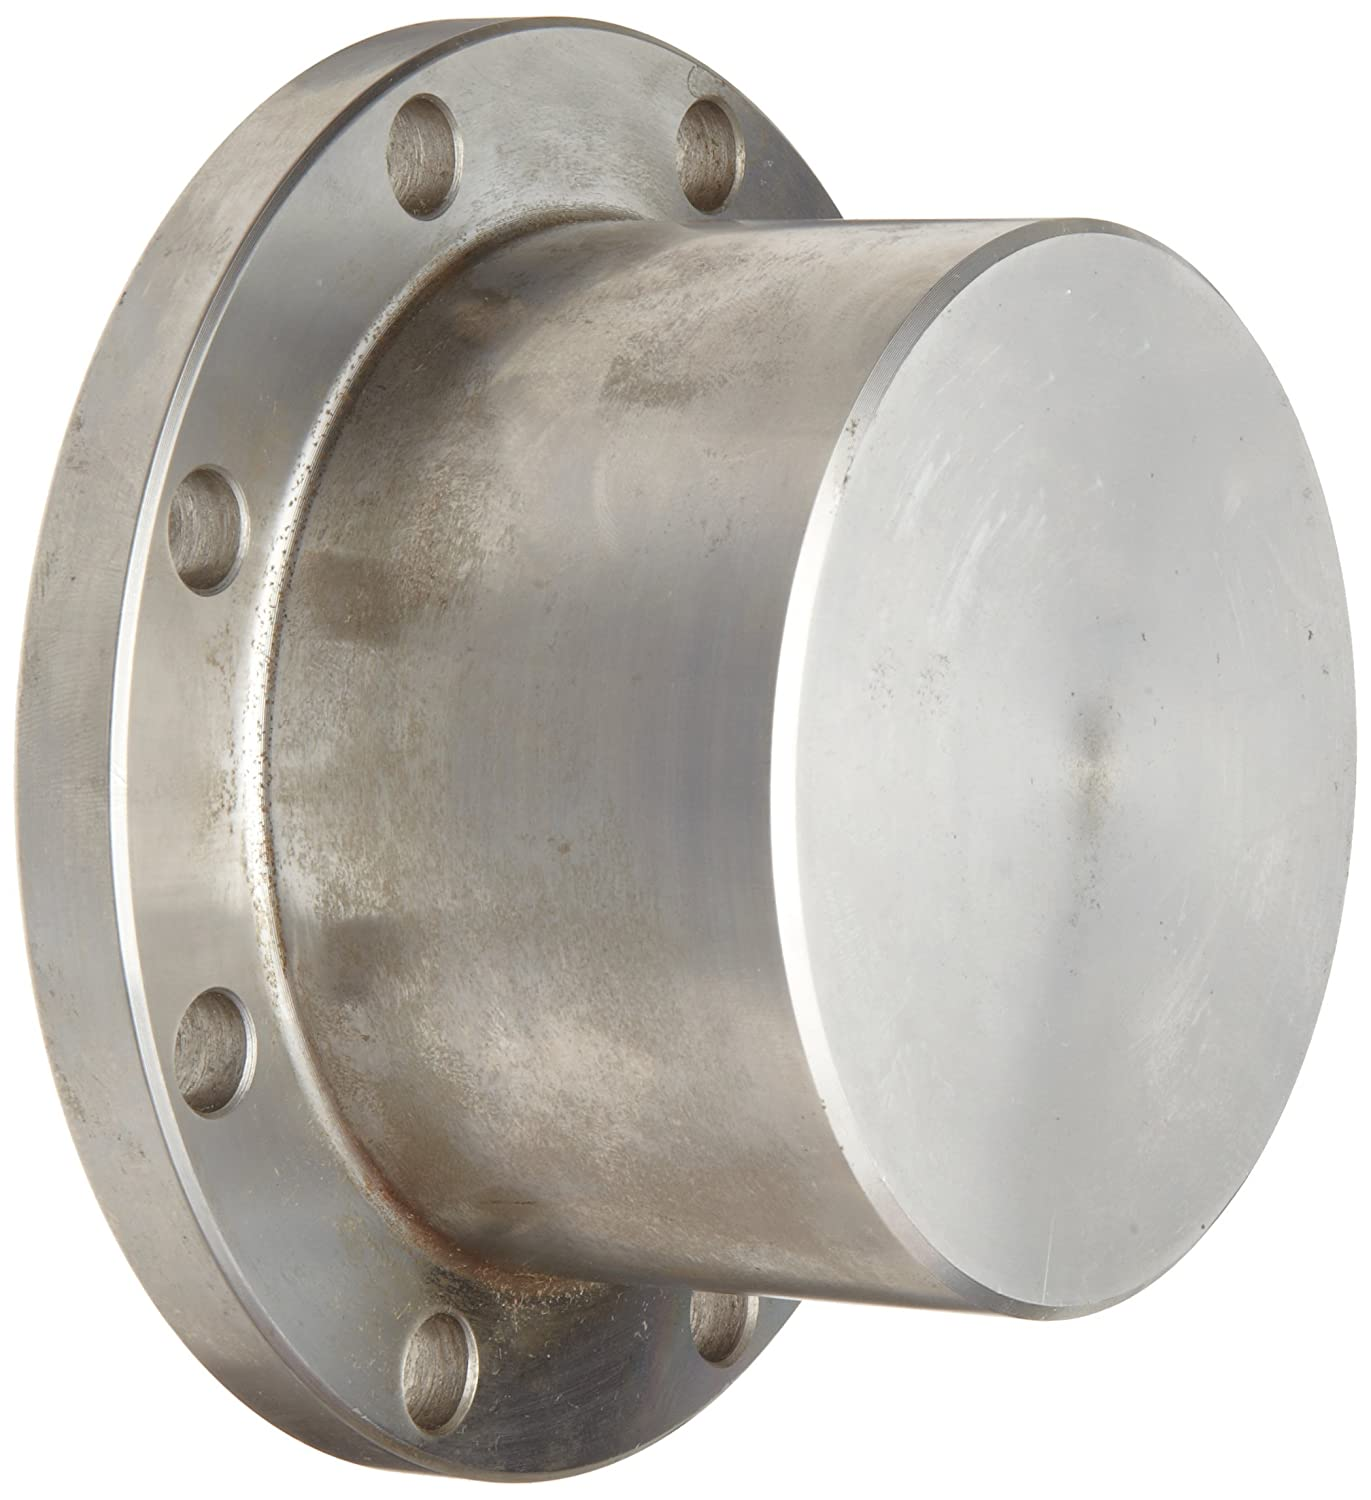 Lovejoy 06235 Size 1020 Grid Spacer Coupling Shaft Hub, Inch, Solid Bore, 422 in-lbs Nominal Torque, No Keyway